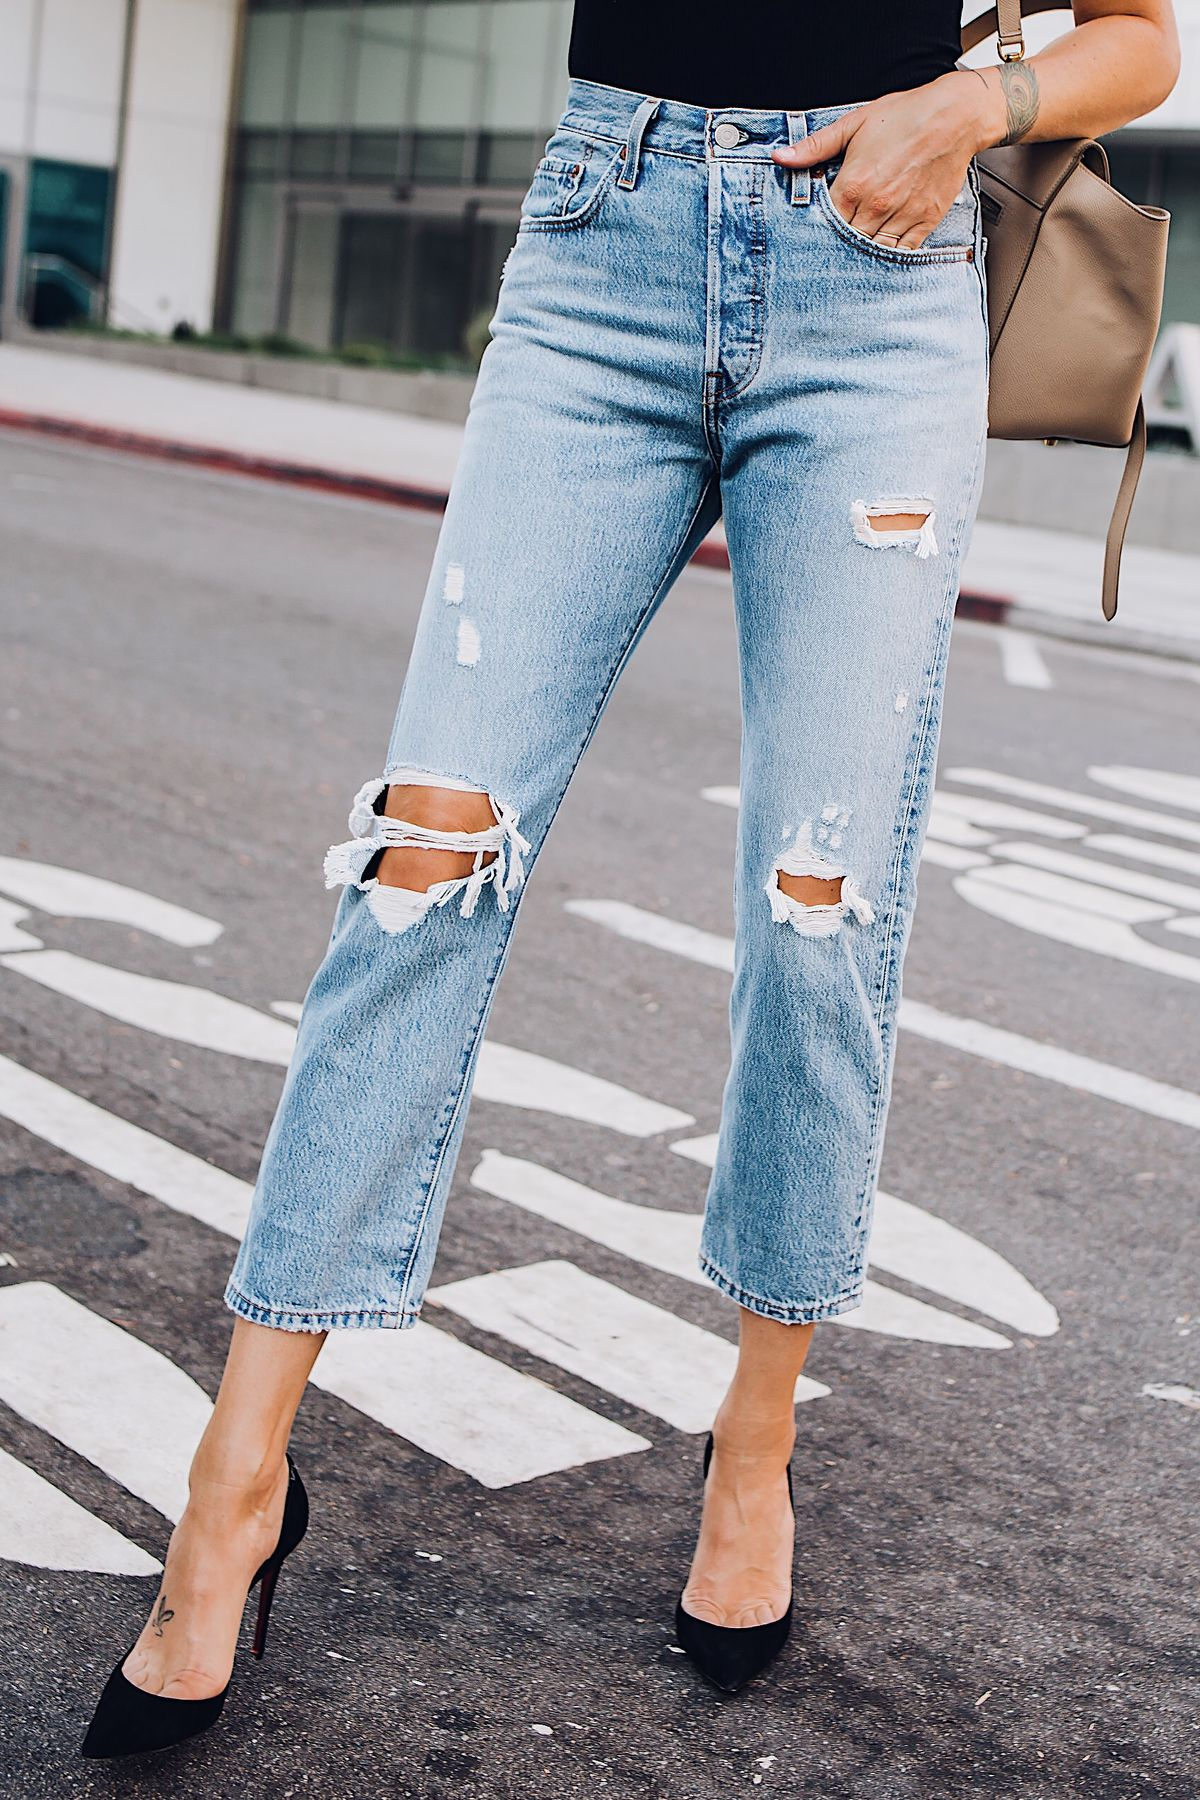 b14f9dab8de Woman Wearing Levis Wedgie Straight Leg Ripped Jeans Black Pumps Fashion  Jackson San Diego Fashion Blogger Street Style